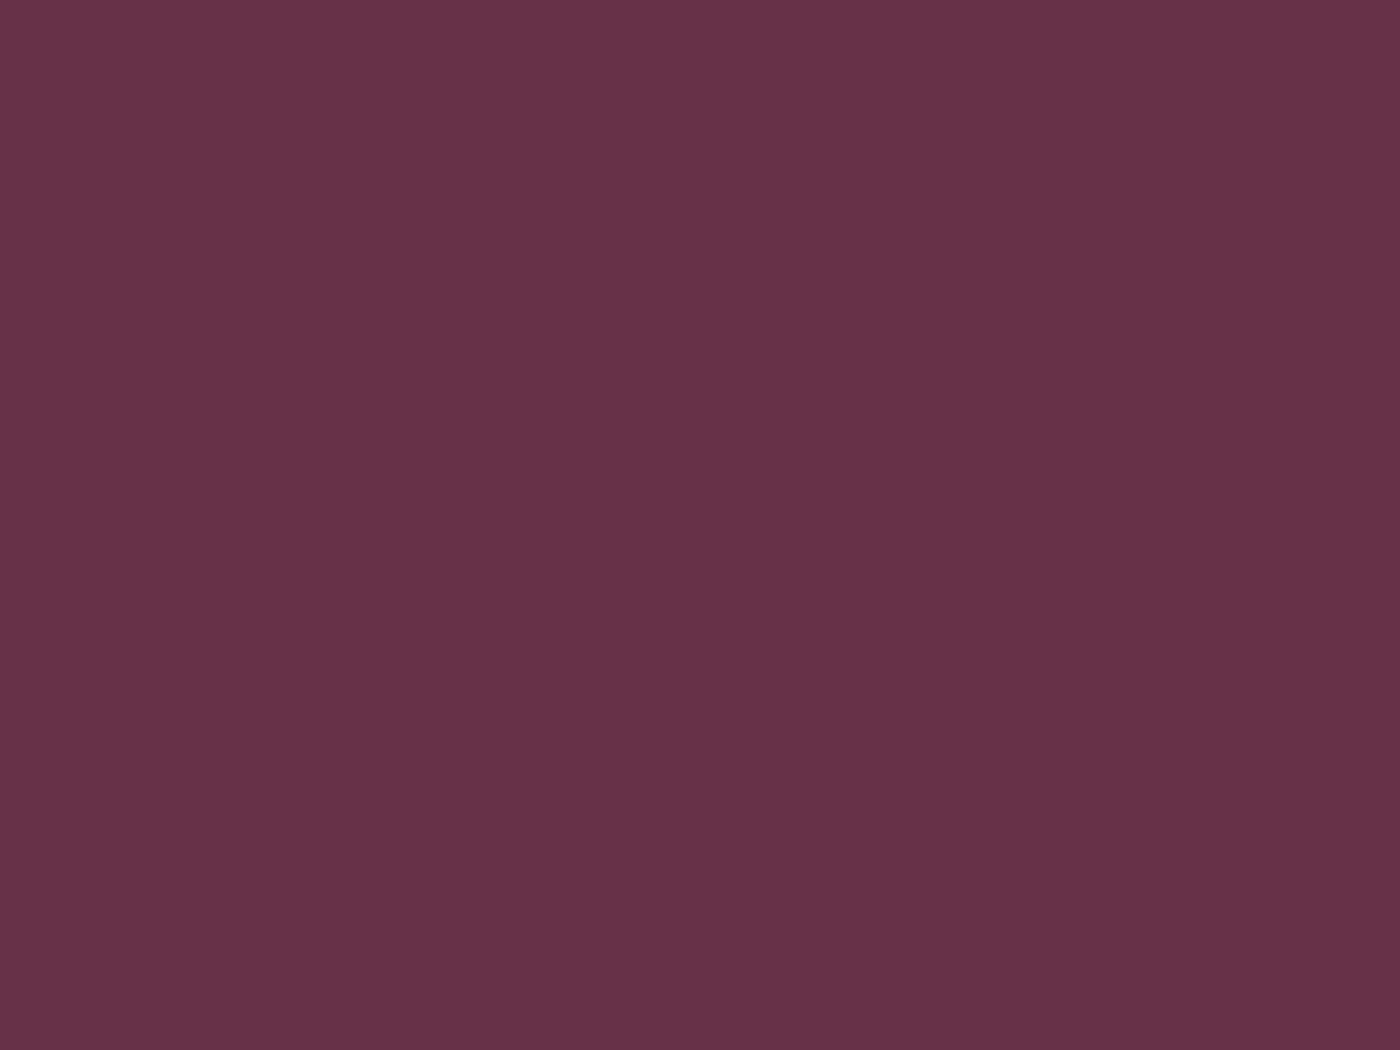 1400x1050 Old Mauve Solid Color Background